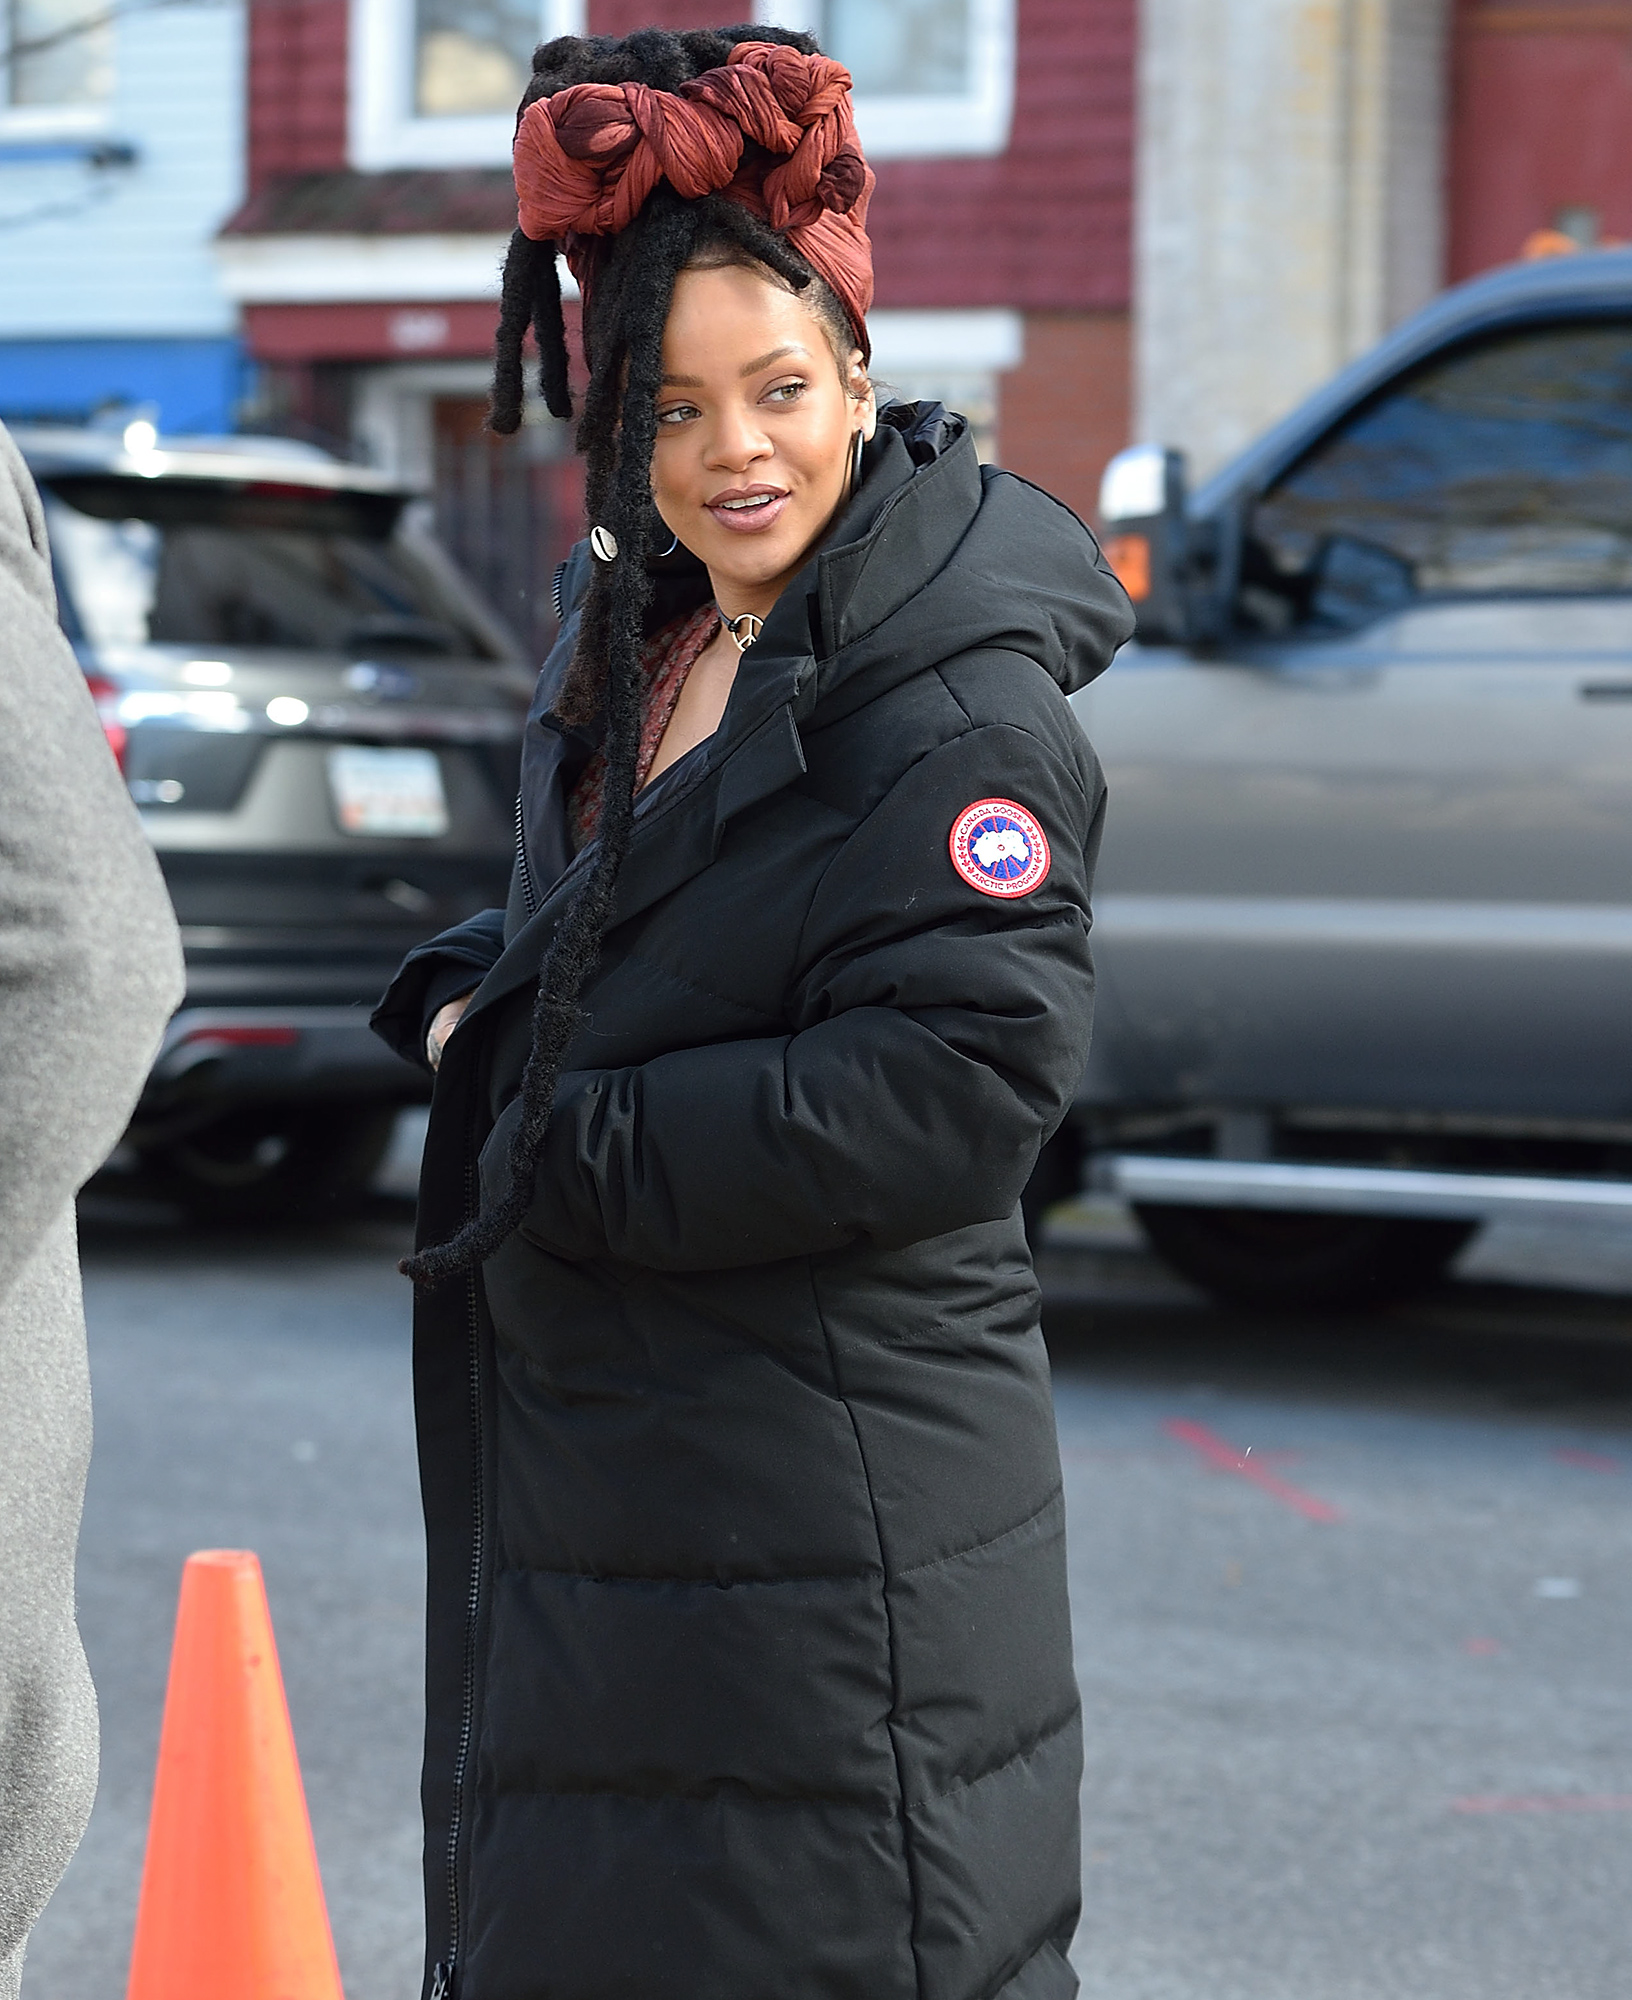 Rihanna and Cate Blanchett on set of Oceans 8 filming in NYC.